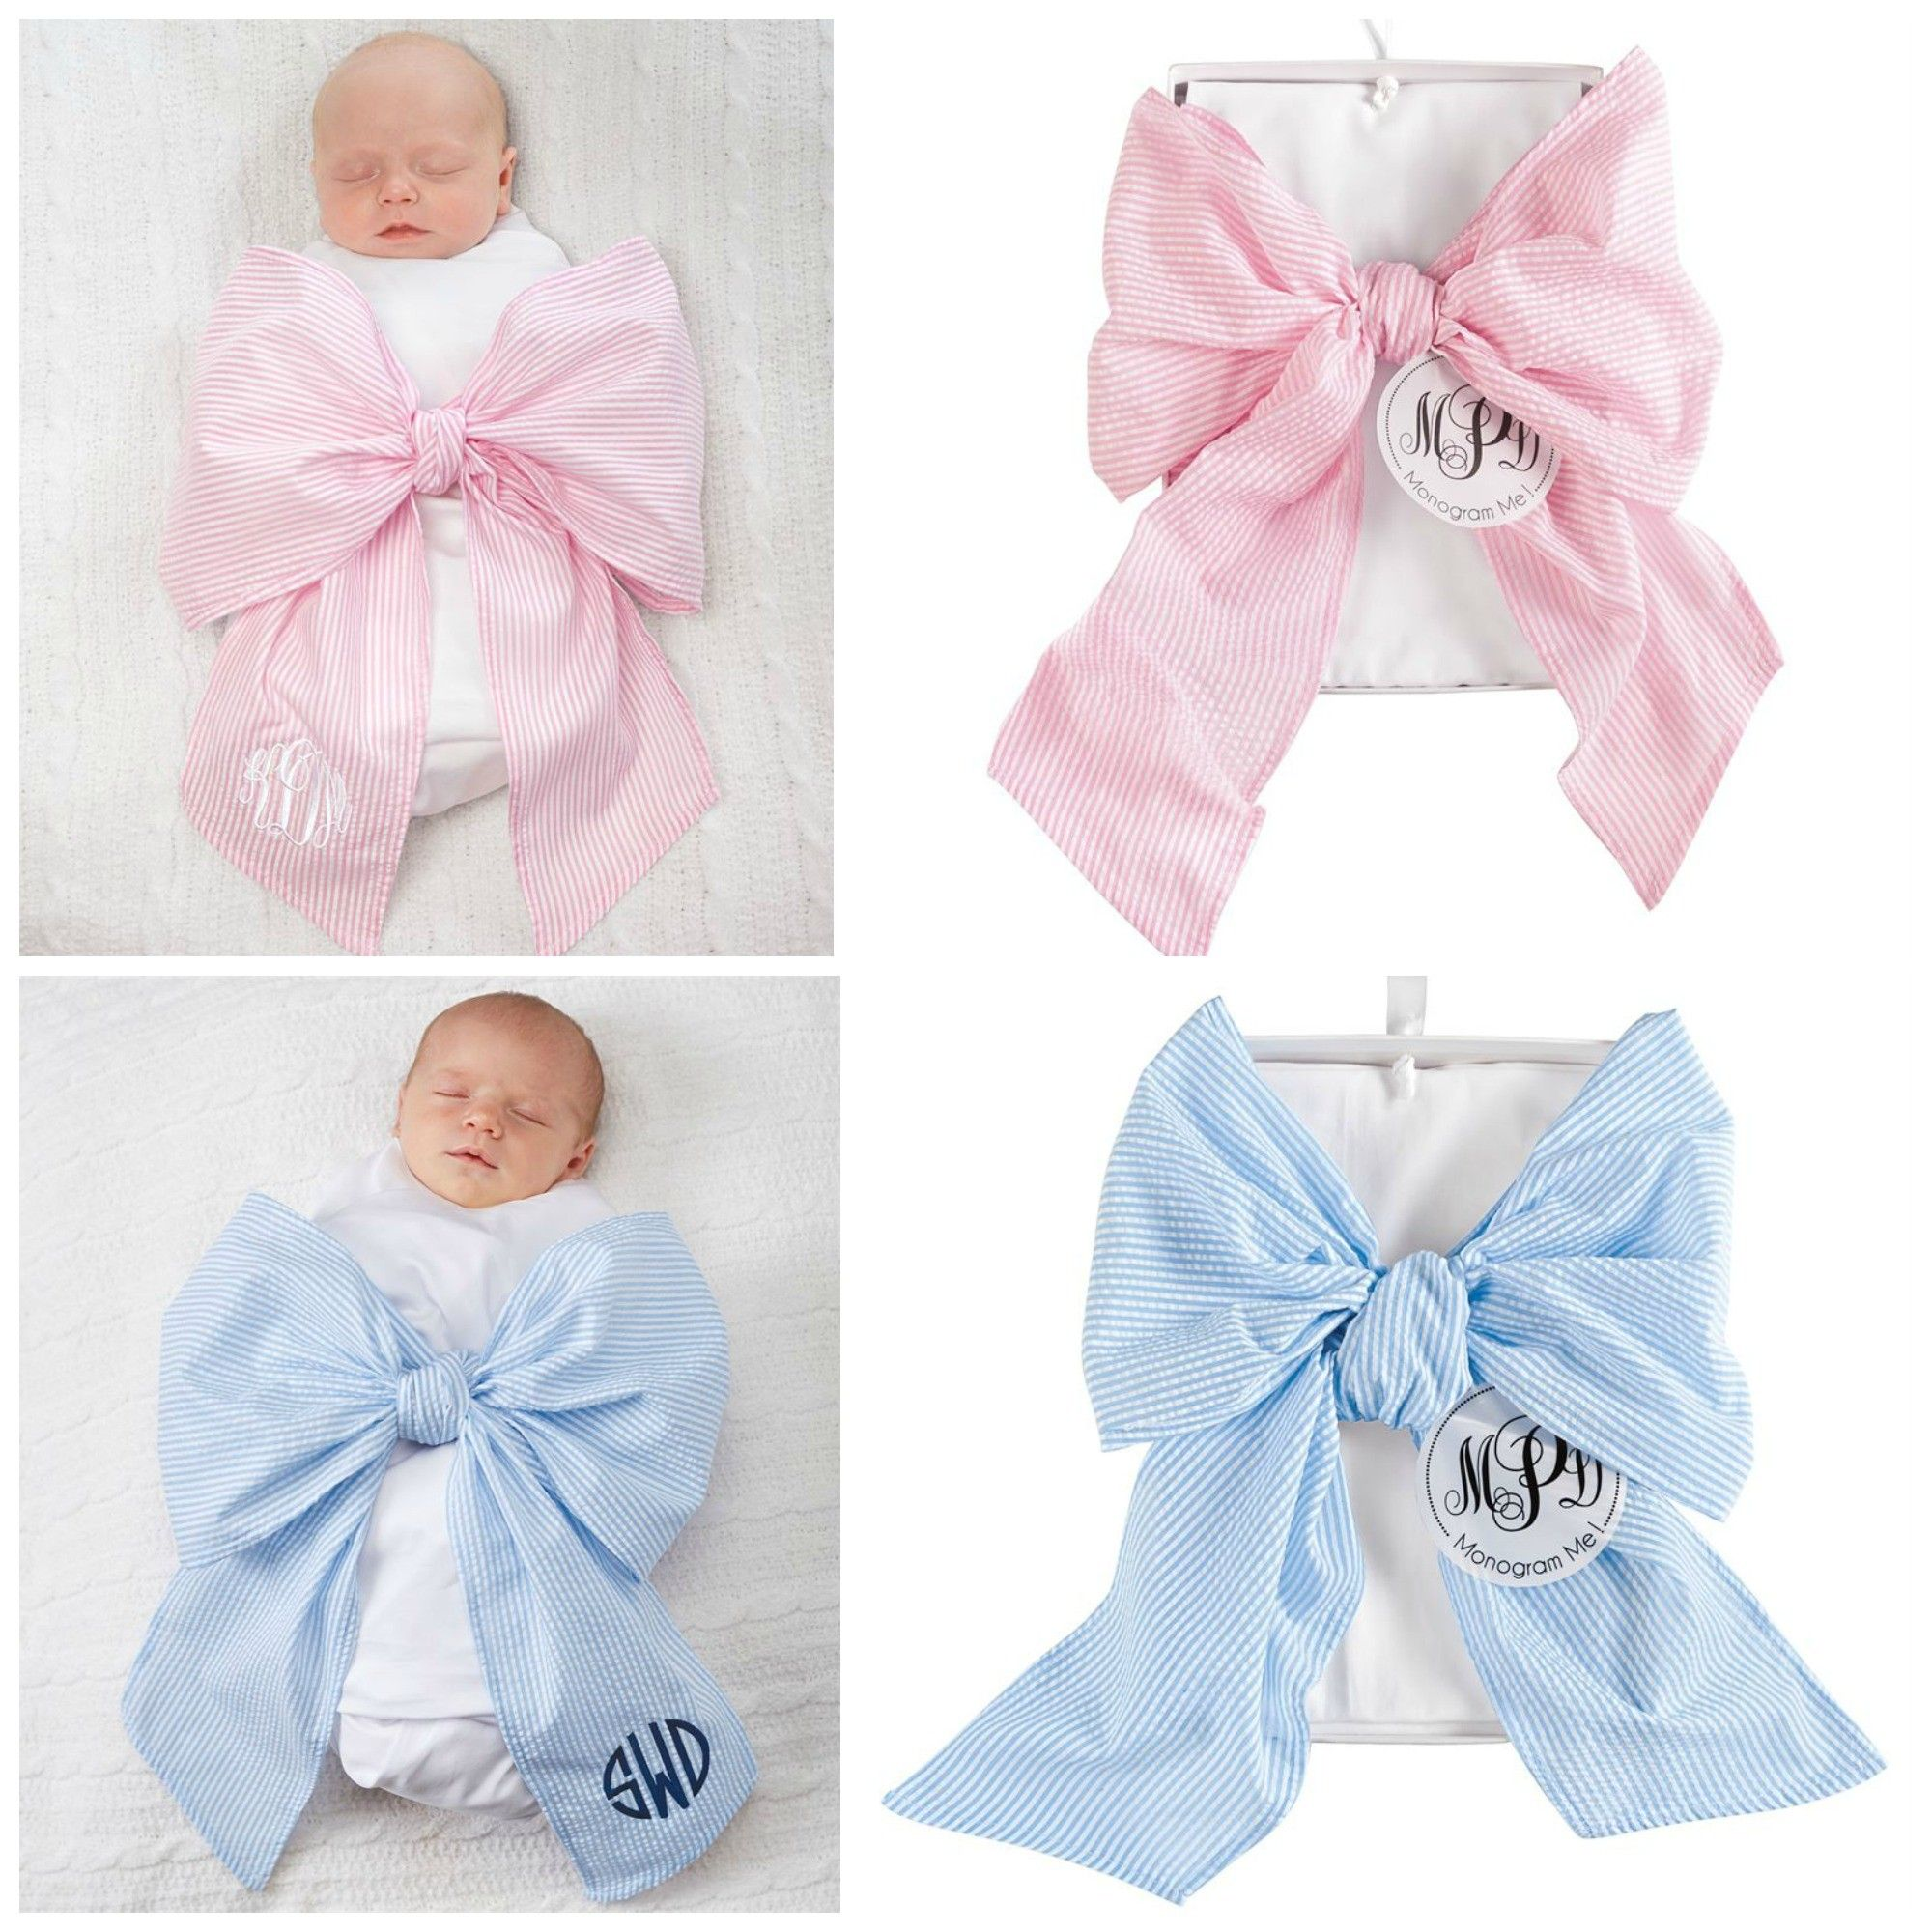 How To Swaddle A Baby With A Blanket Inspiration Bow Swaddle Baby Blanket In Pink Or Blue#mudpie Design Inspiration